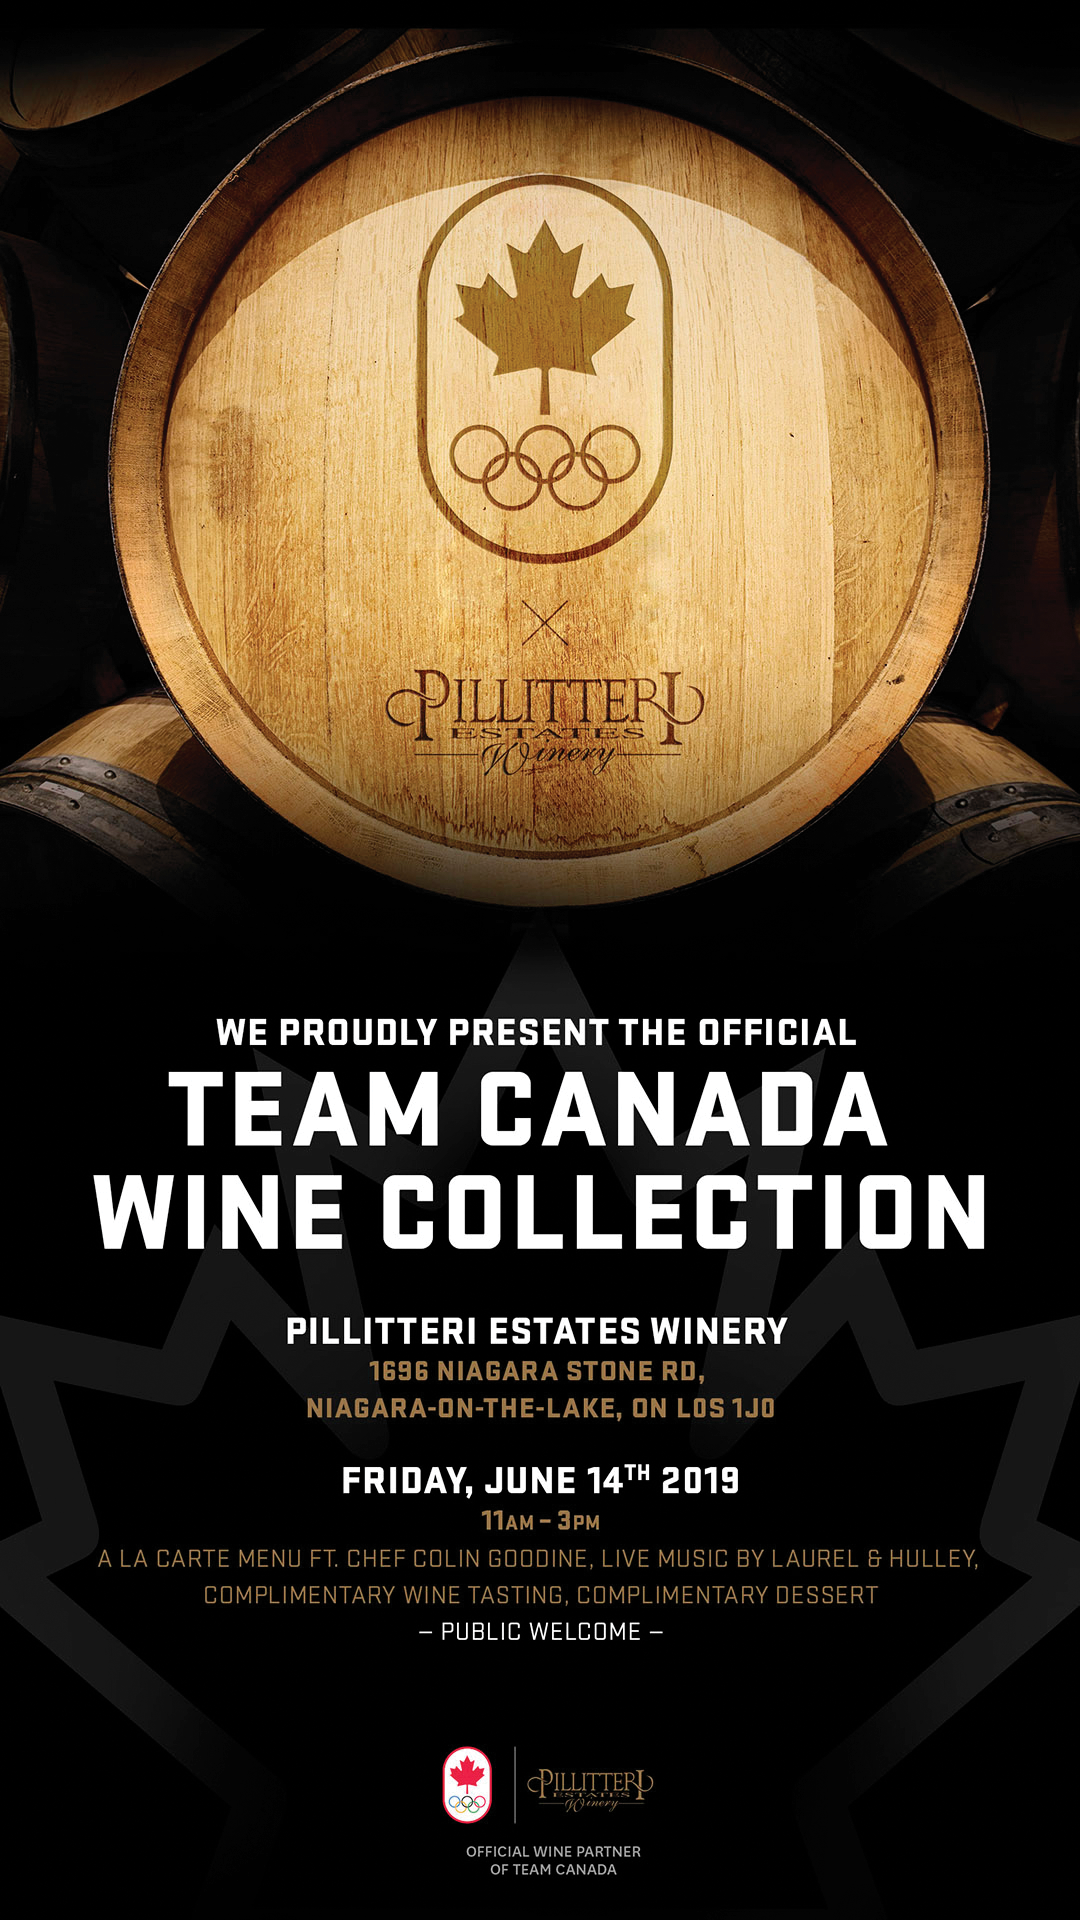 Team Canada wine collection